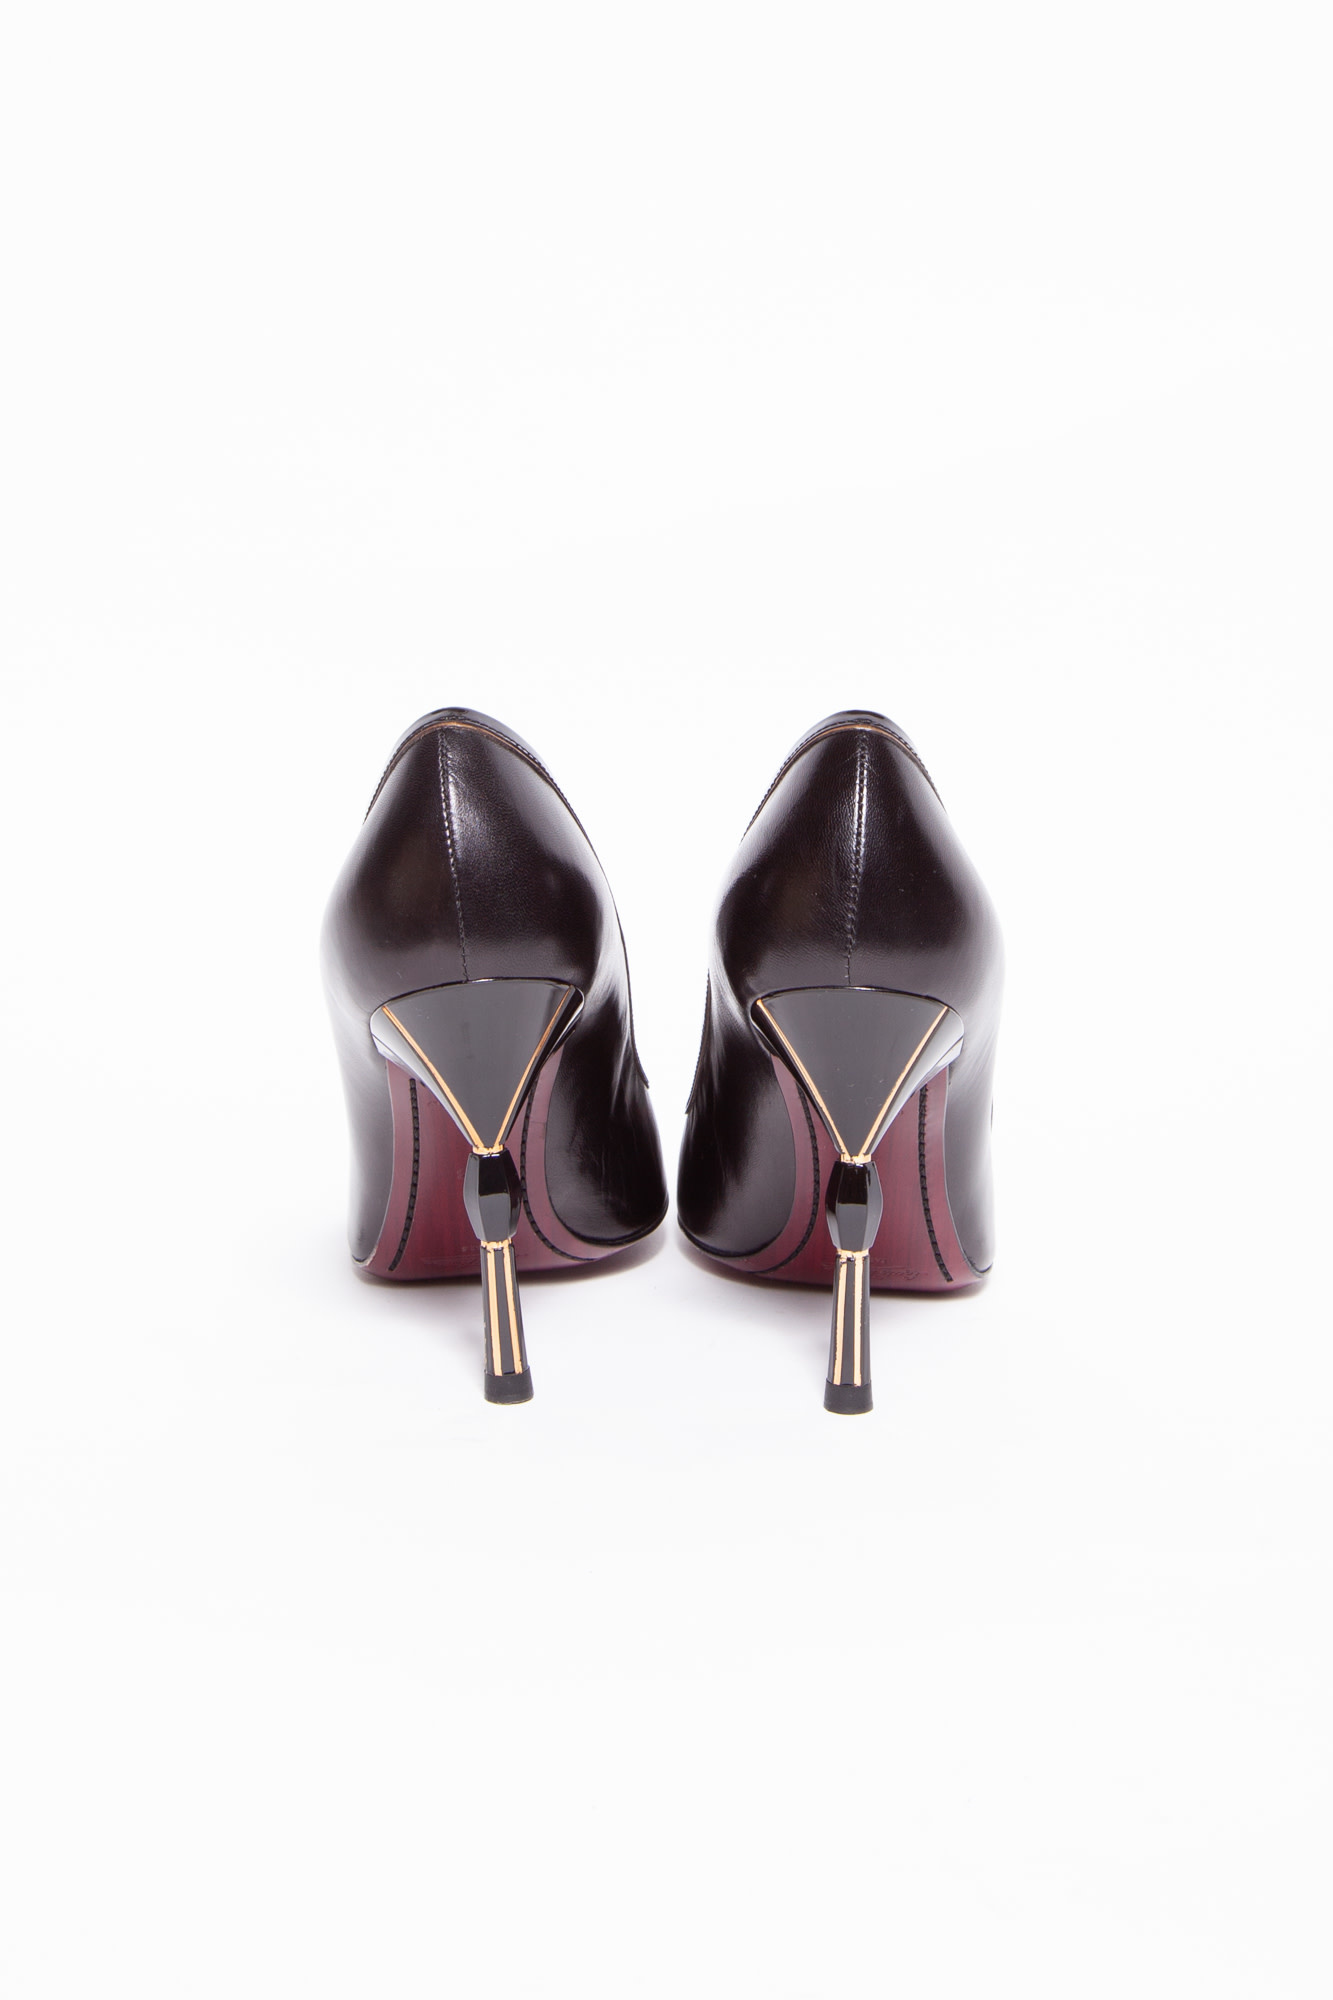 Louis Vuitton NEW PRICE (WAS $425) - BLACK LEATHER PUMPS WITH GOLDEN HEEL & BURGUNDY SOLE